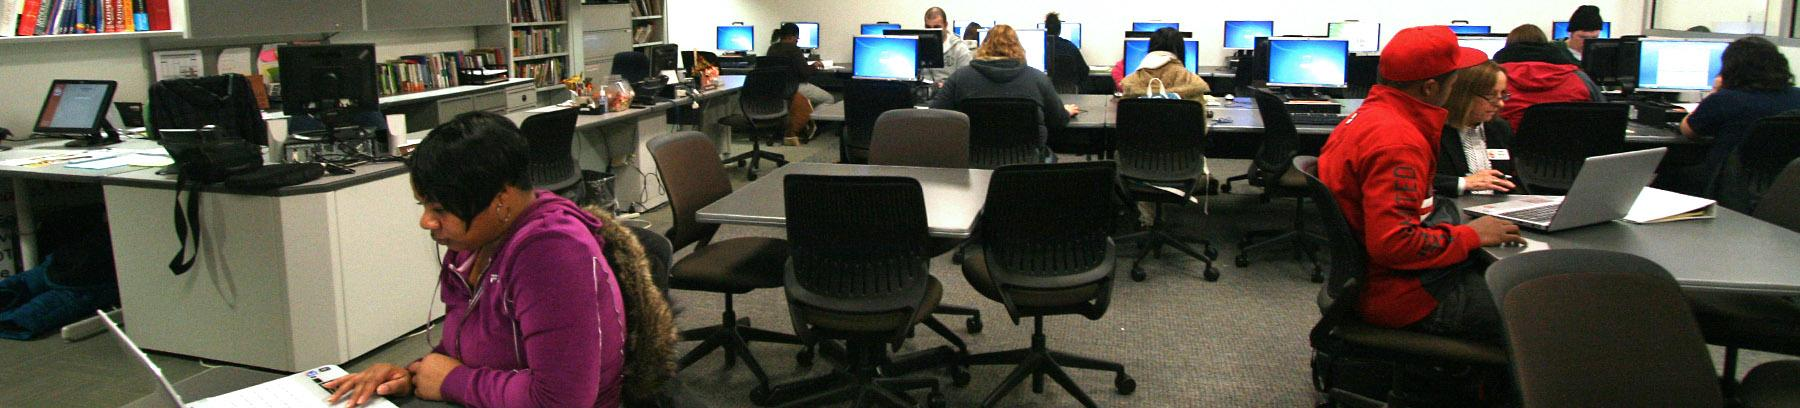 Image of computer room and students working on computers.